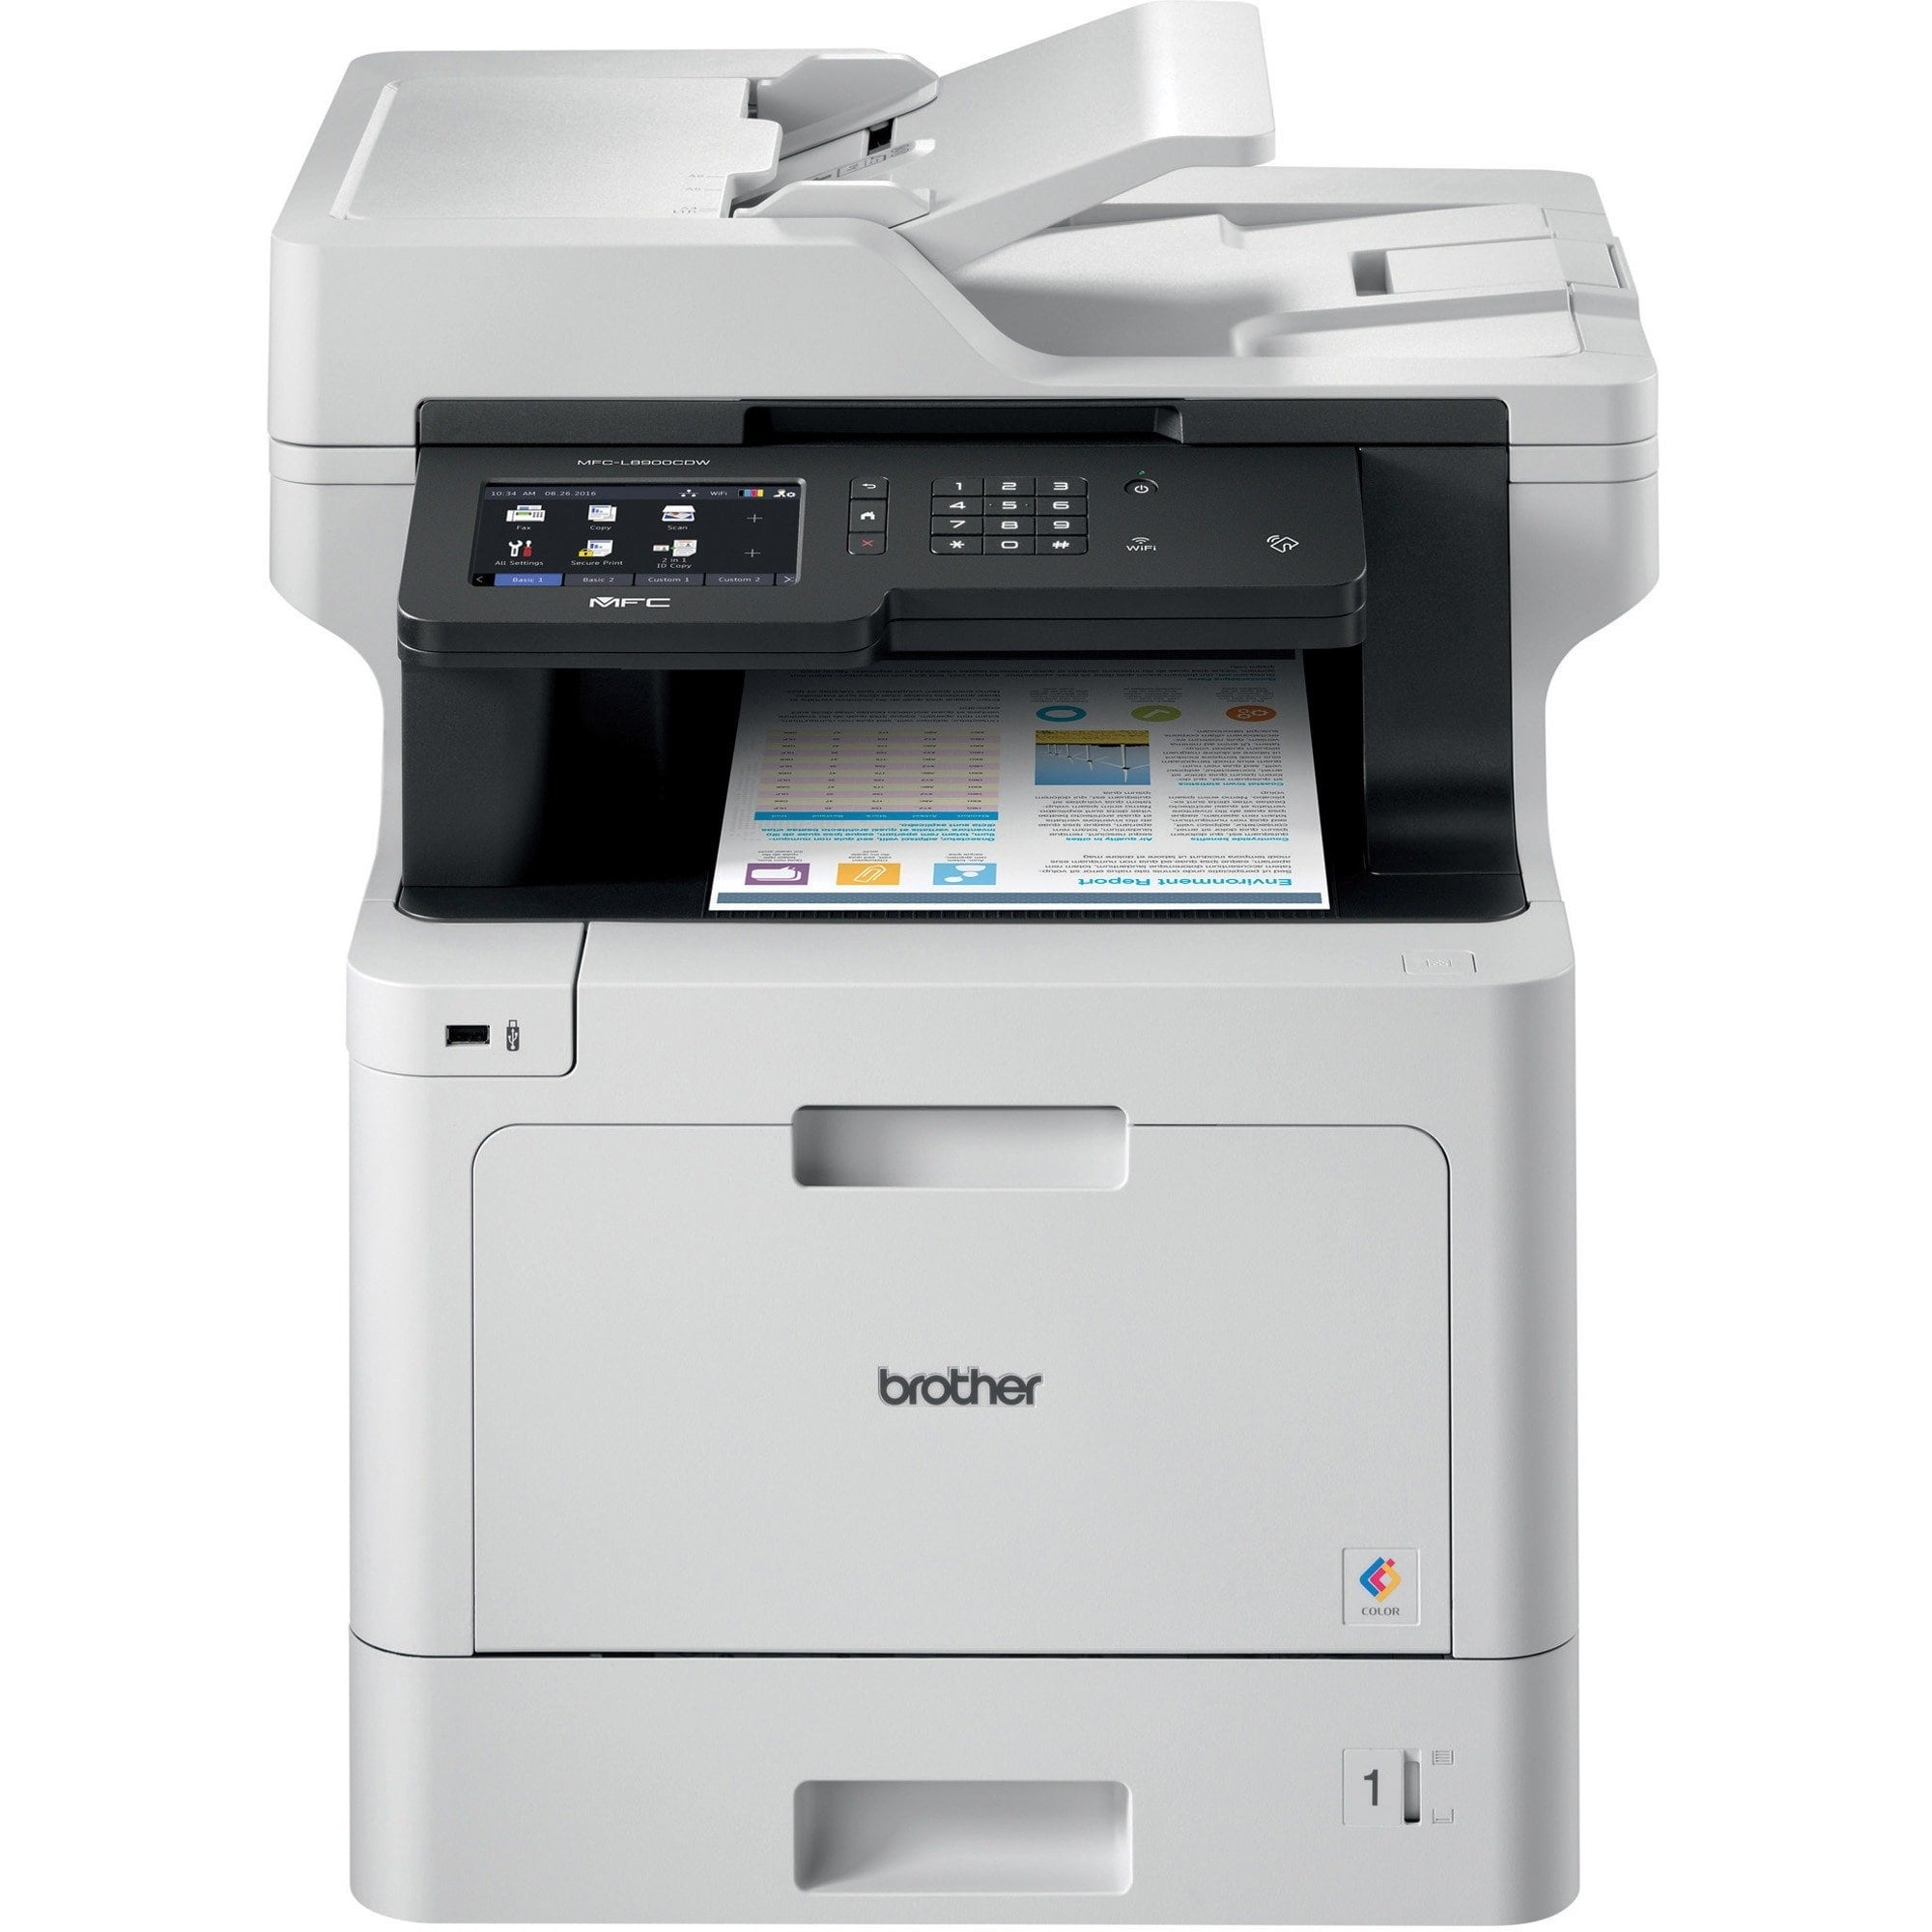 Brother Business Color Laser All In One Duplex Print Wireless Networking Products In 2019 Multifunction Printer Brother Printers Printer Scanner Copier